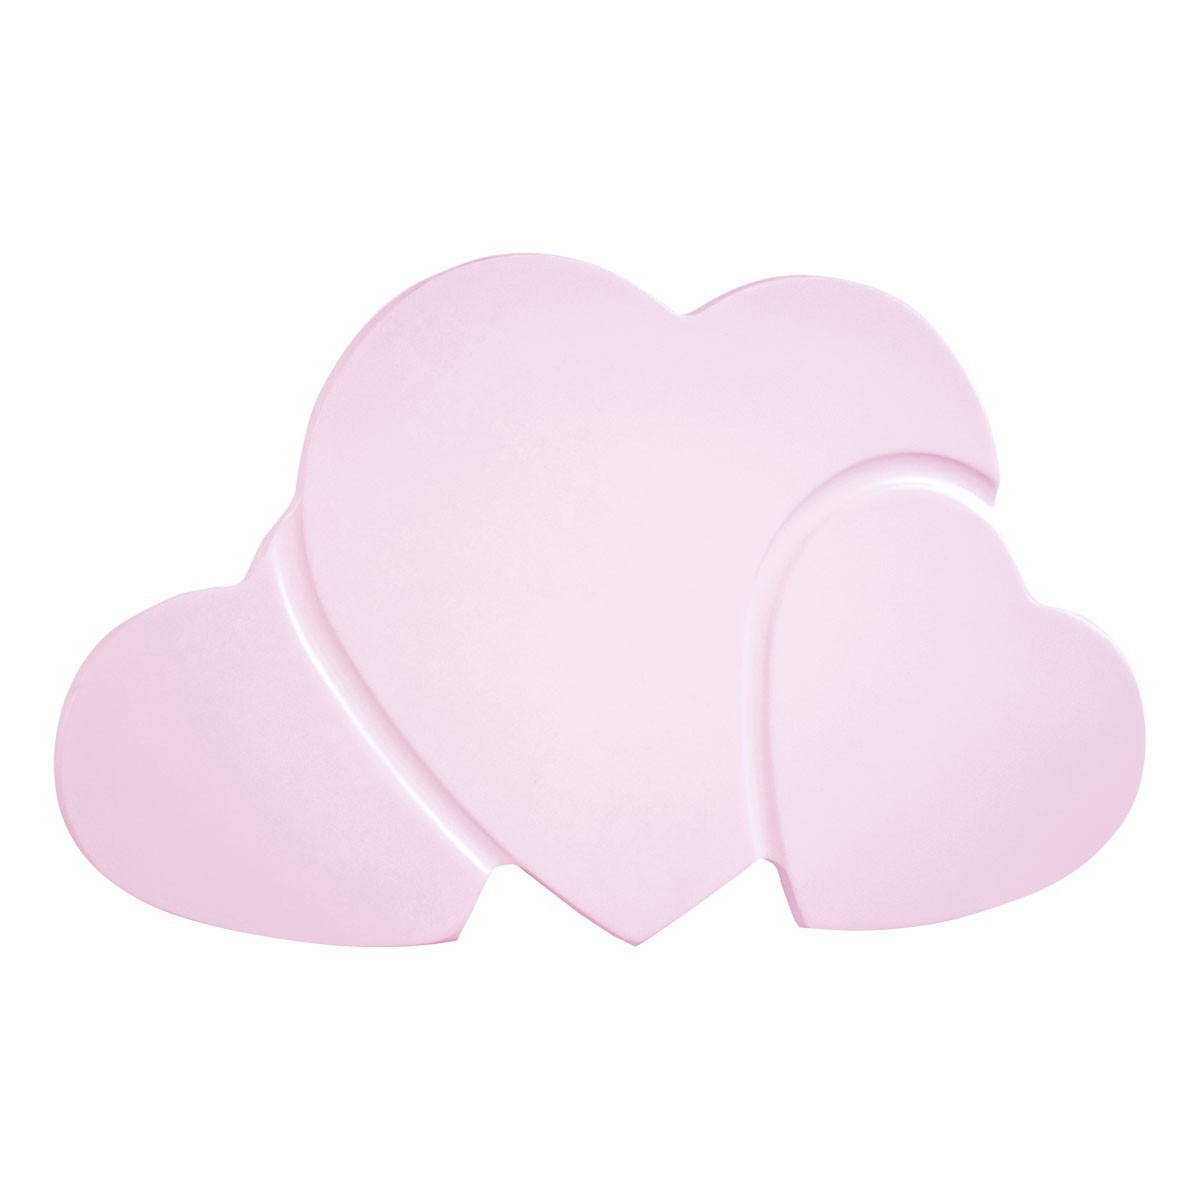 Lampara de pared infantil corazones env o 24h gratis - Lamparas pared infantiles ...